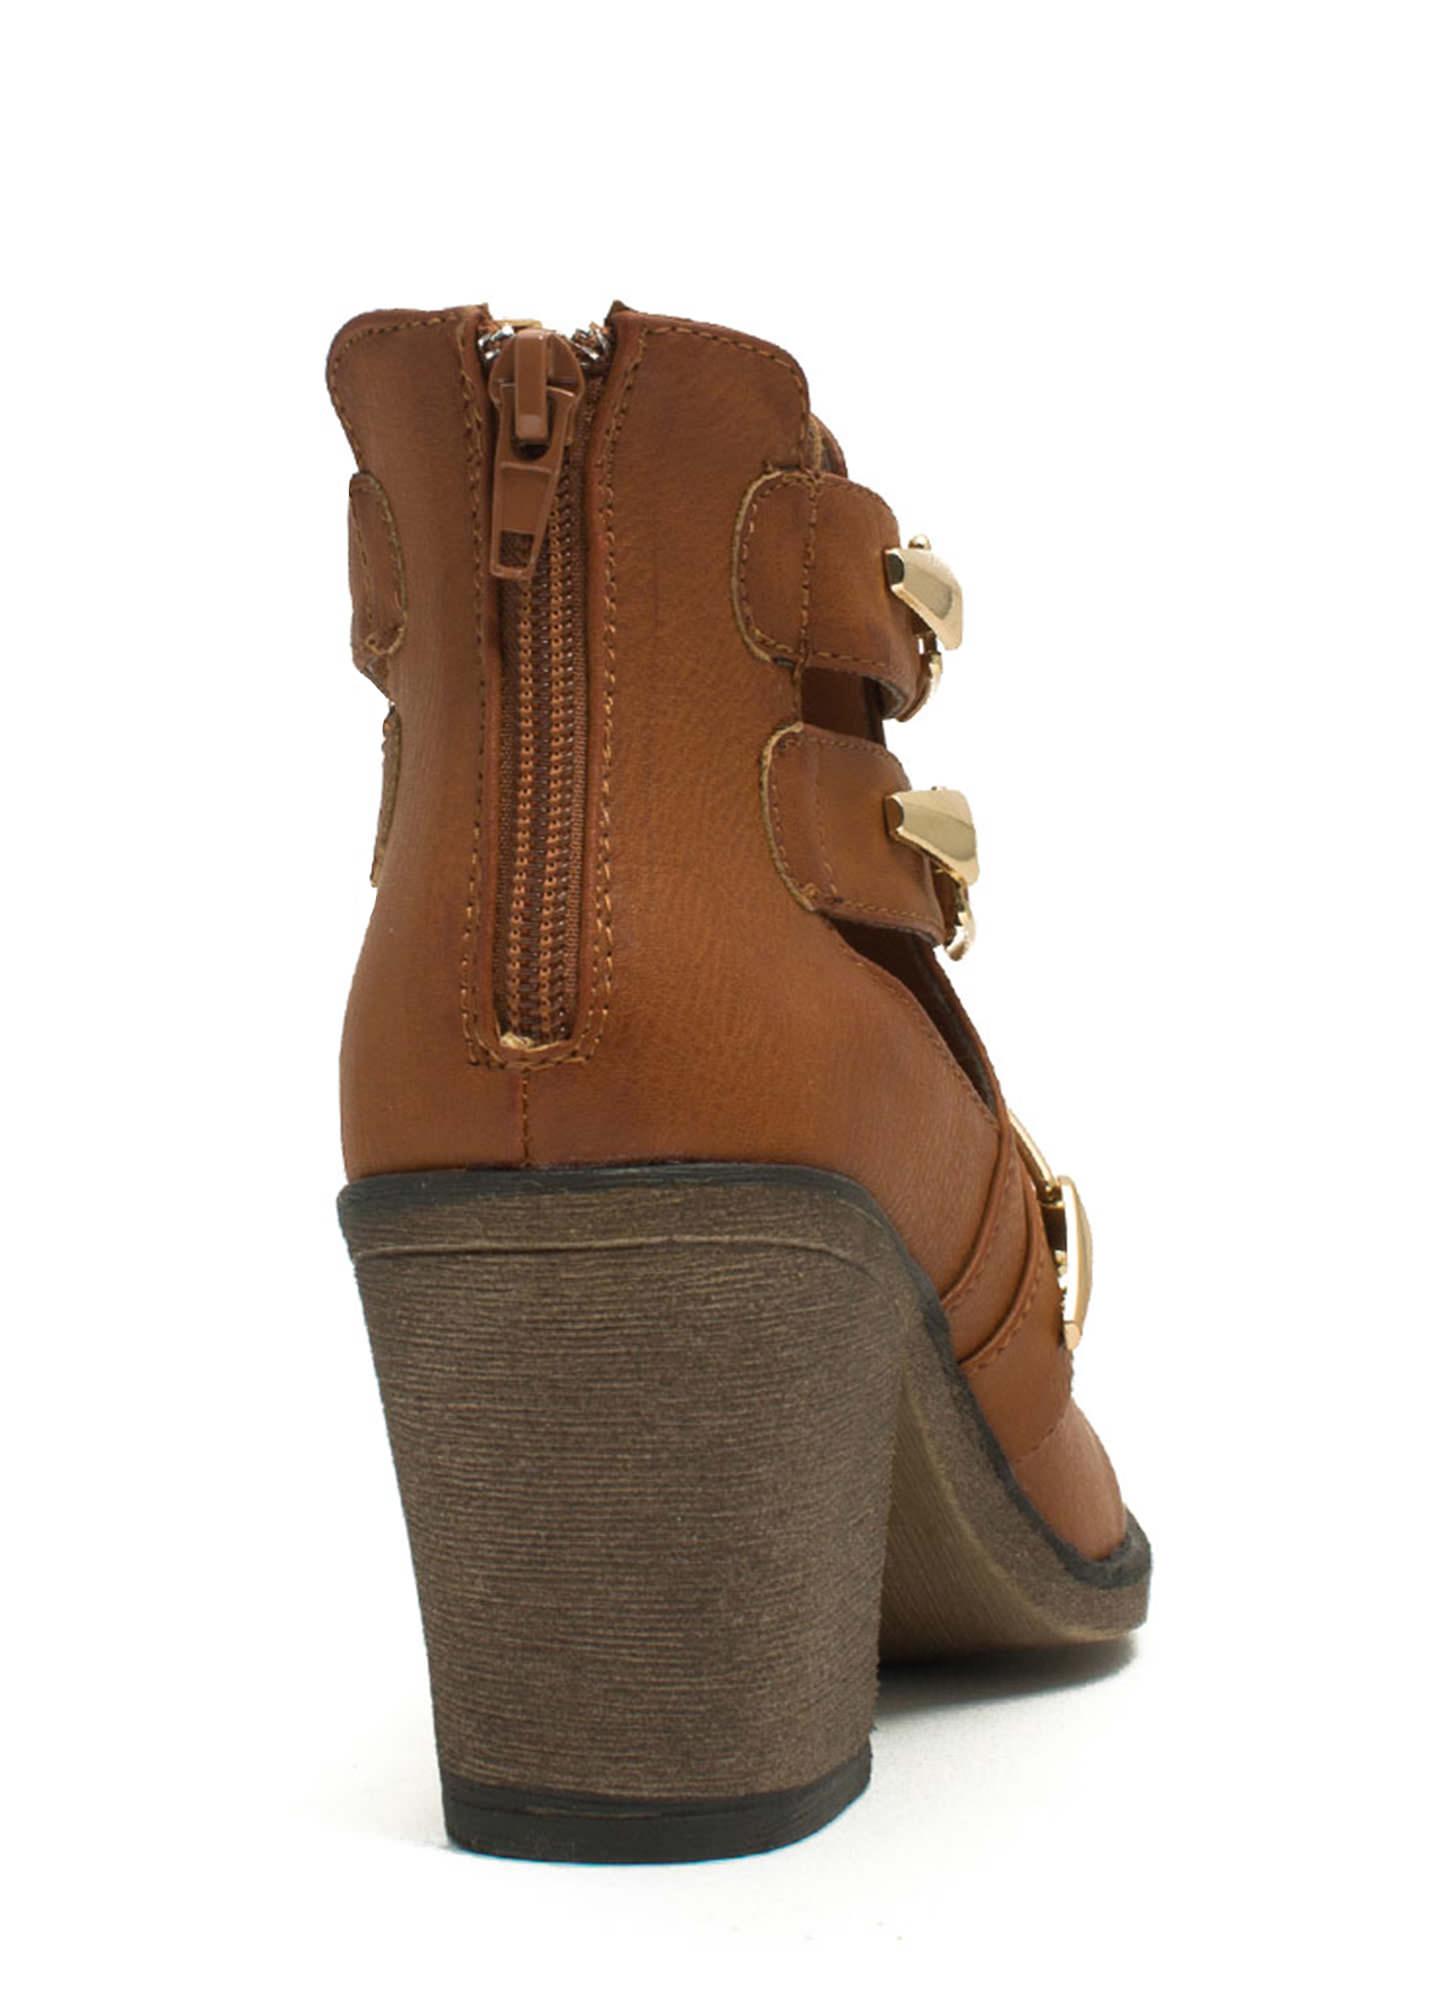 Three's Company Buckled Booties CHESTNUT